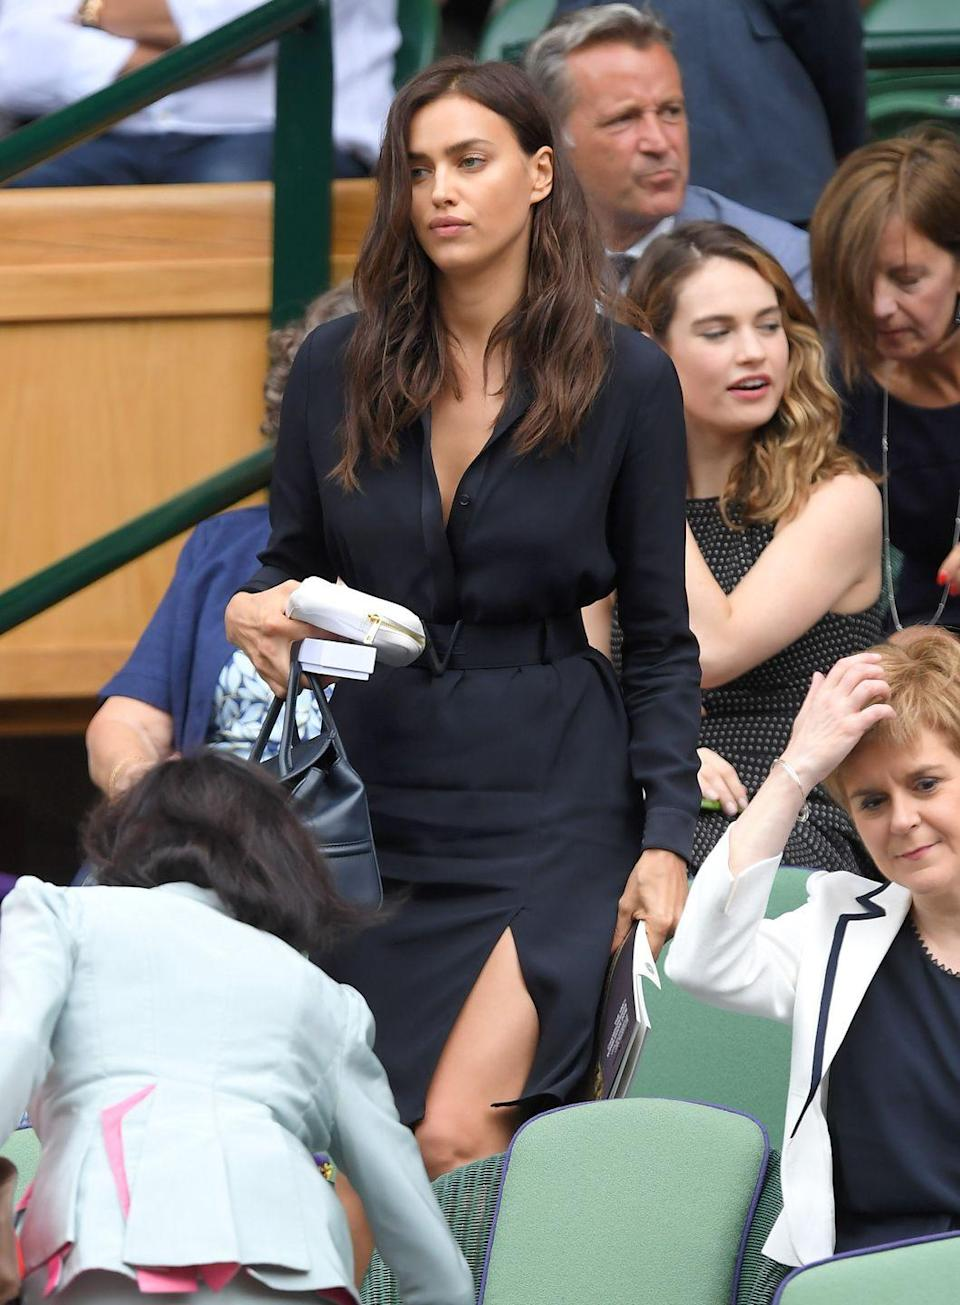 <p><strong>2016</strong> The model also attended the men's final that year, and kept things simple in a navy shirt dress.</p>